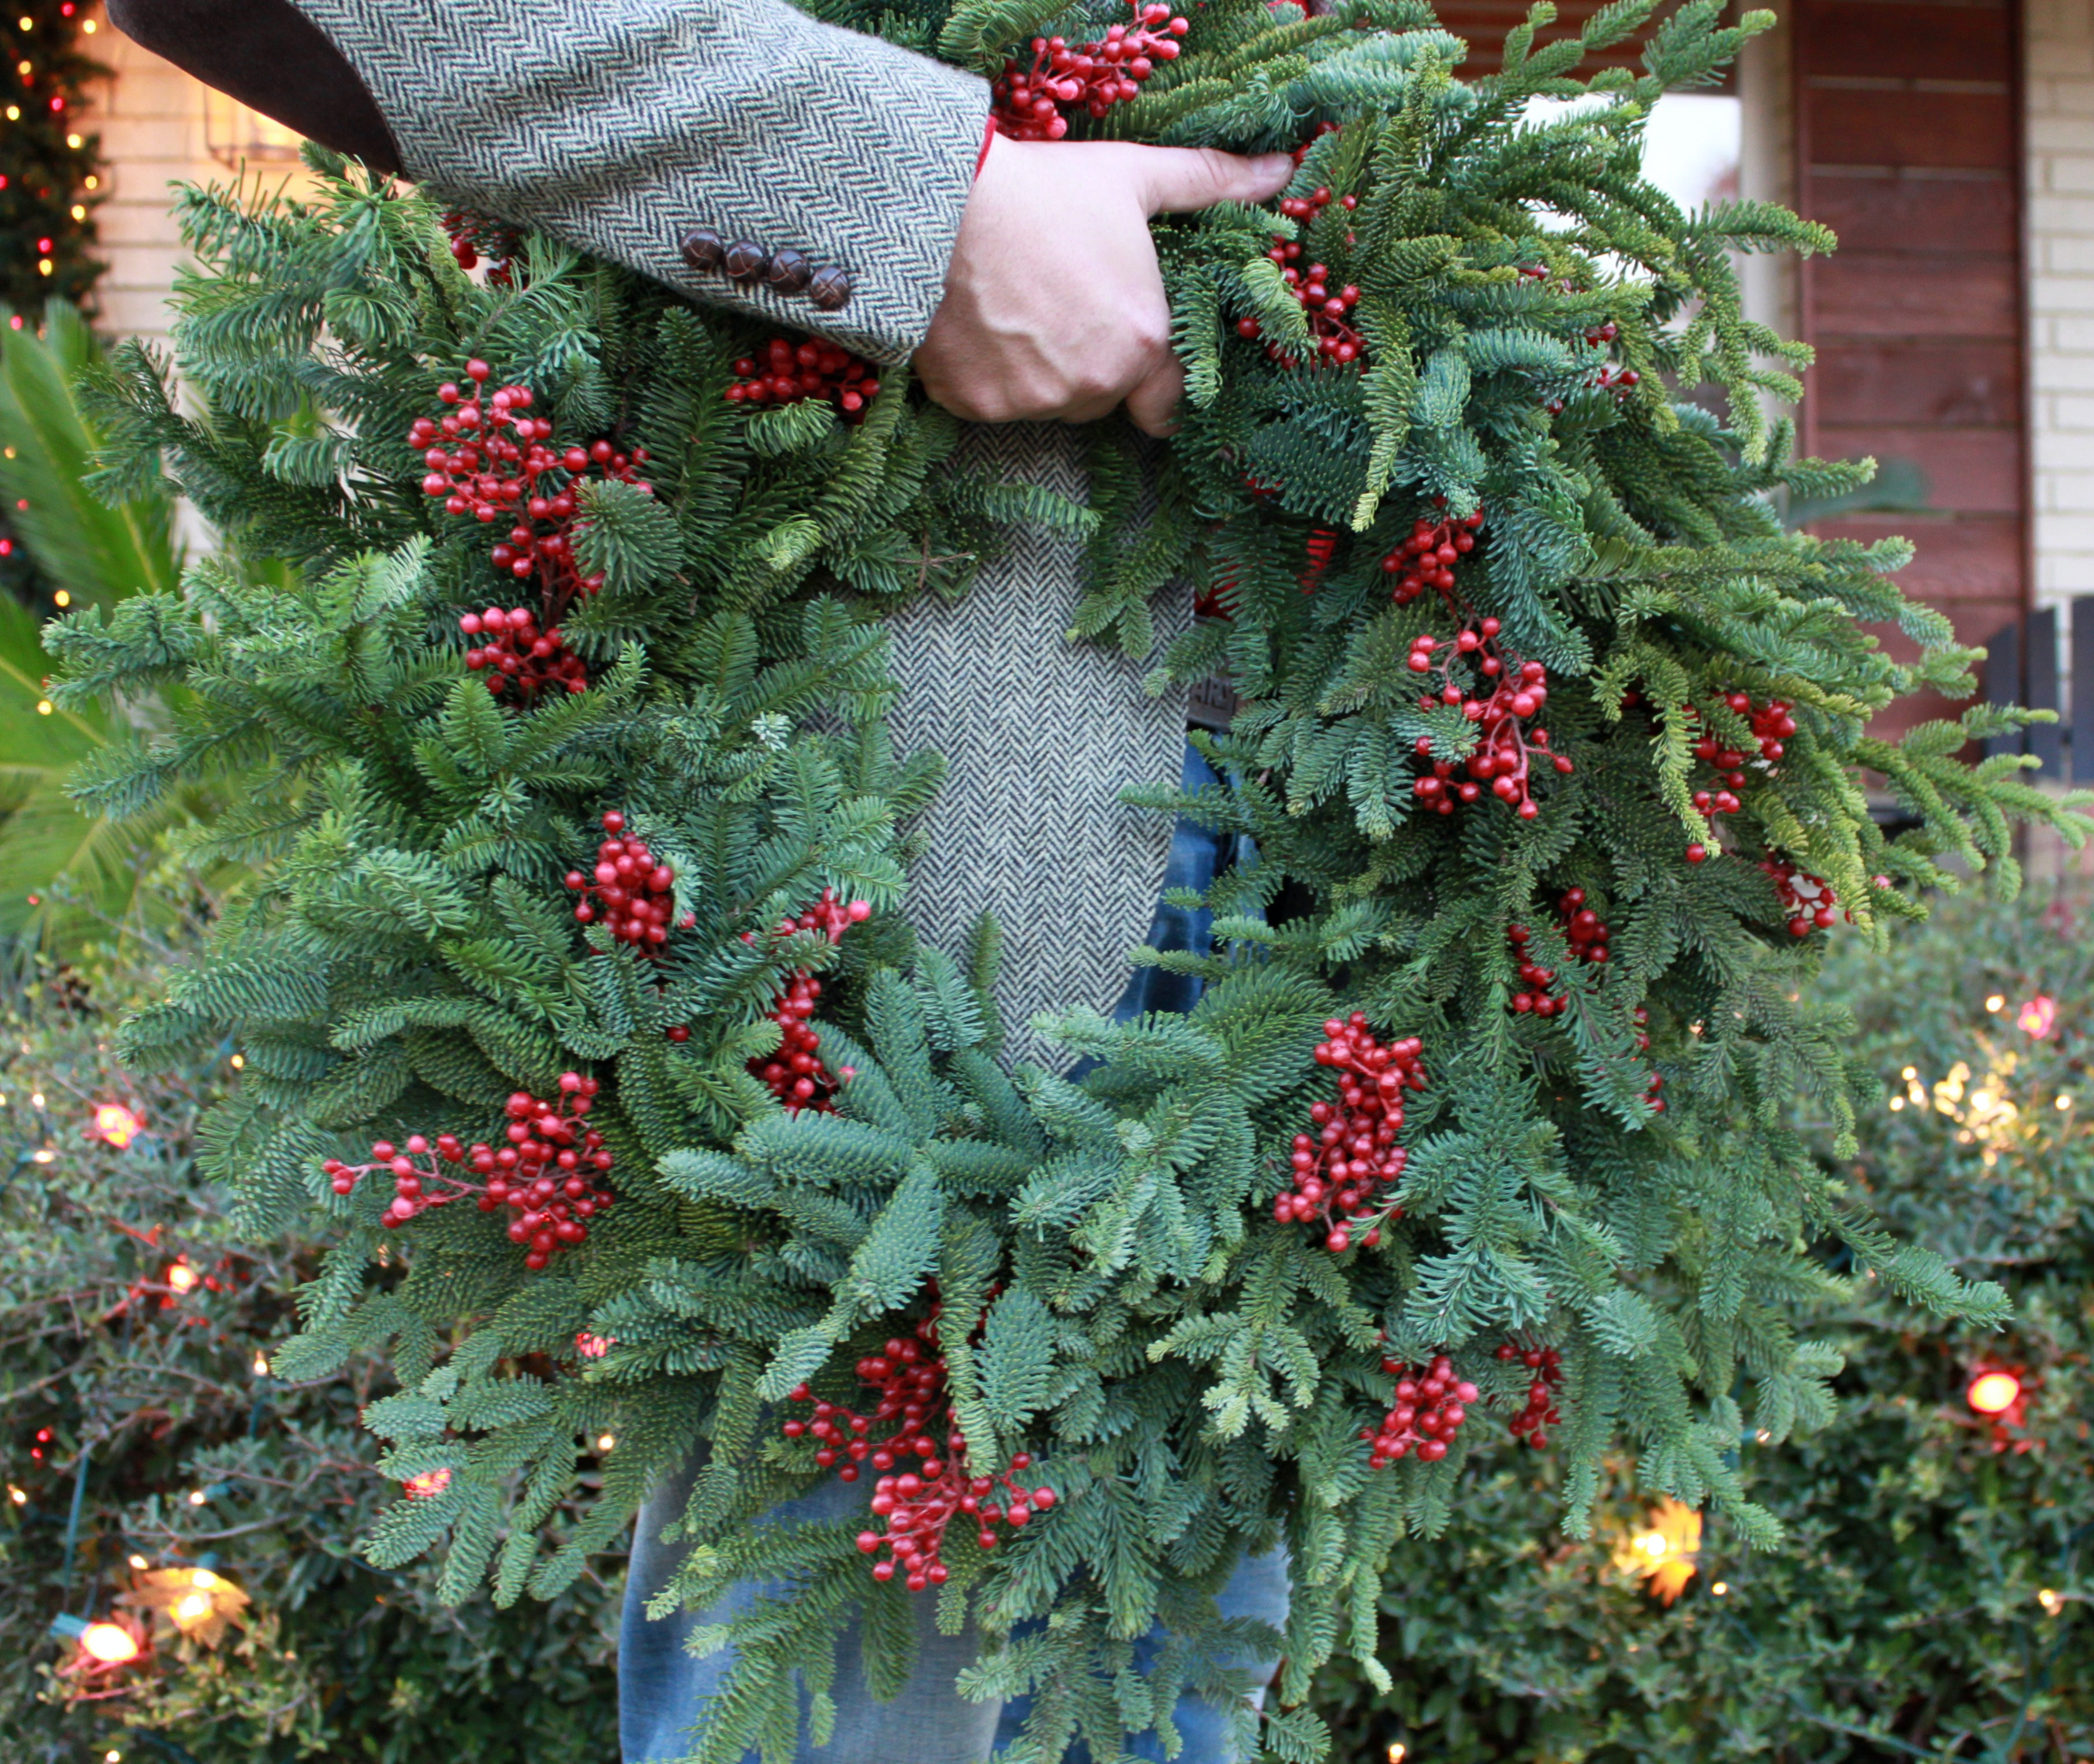 How to Make Your Own Christmas Wreath